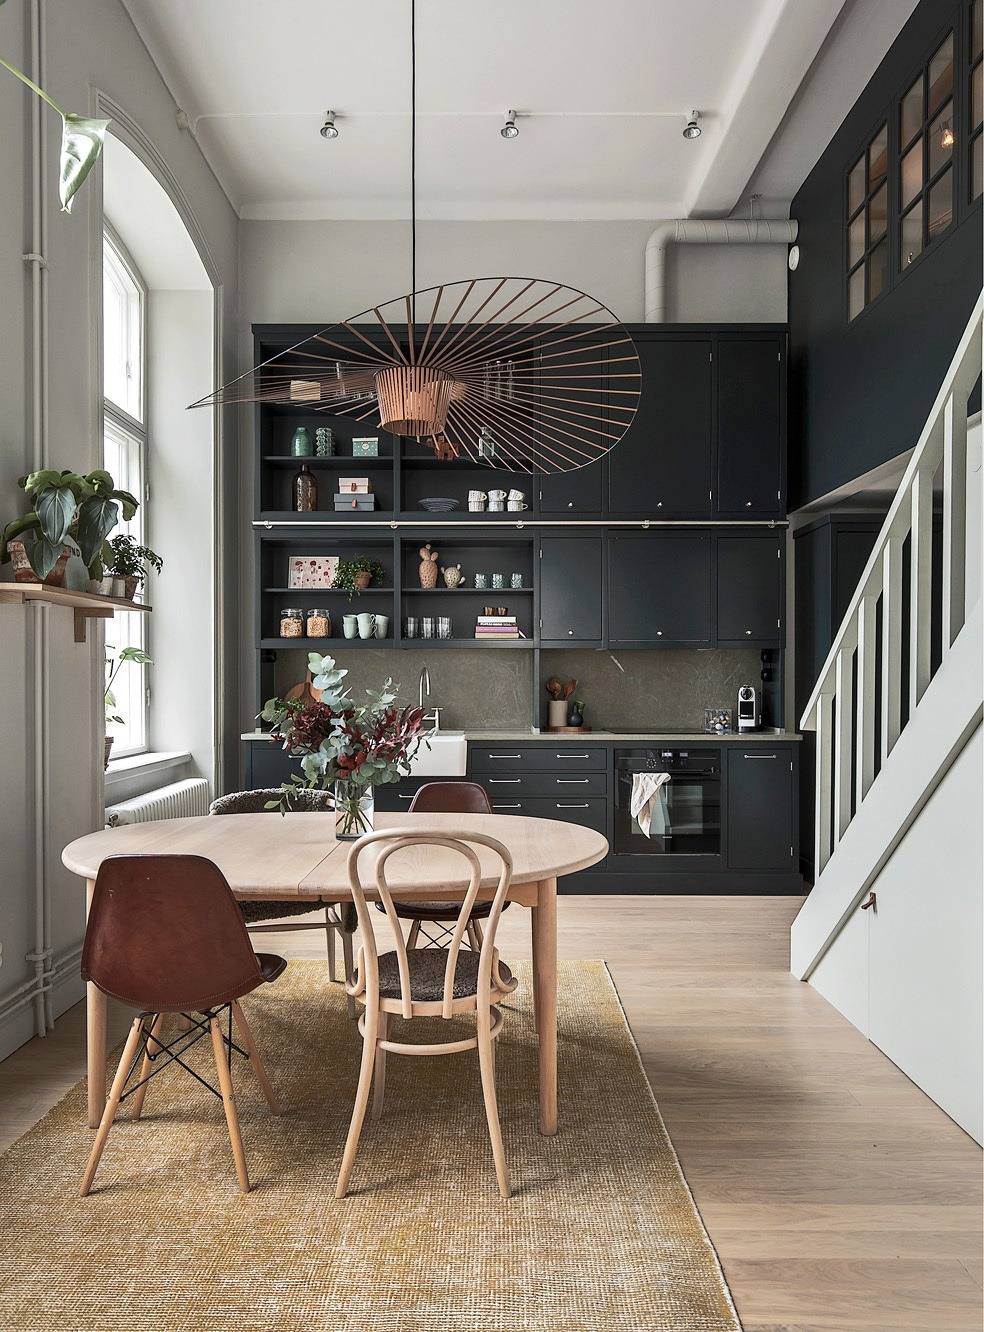 Decoration Interieur Maison Blog Ilaria S Crushan Impressive Kitchen Ilariafatone